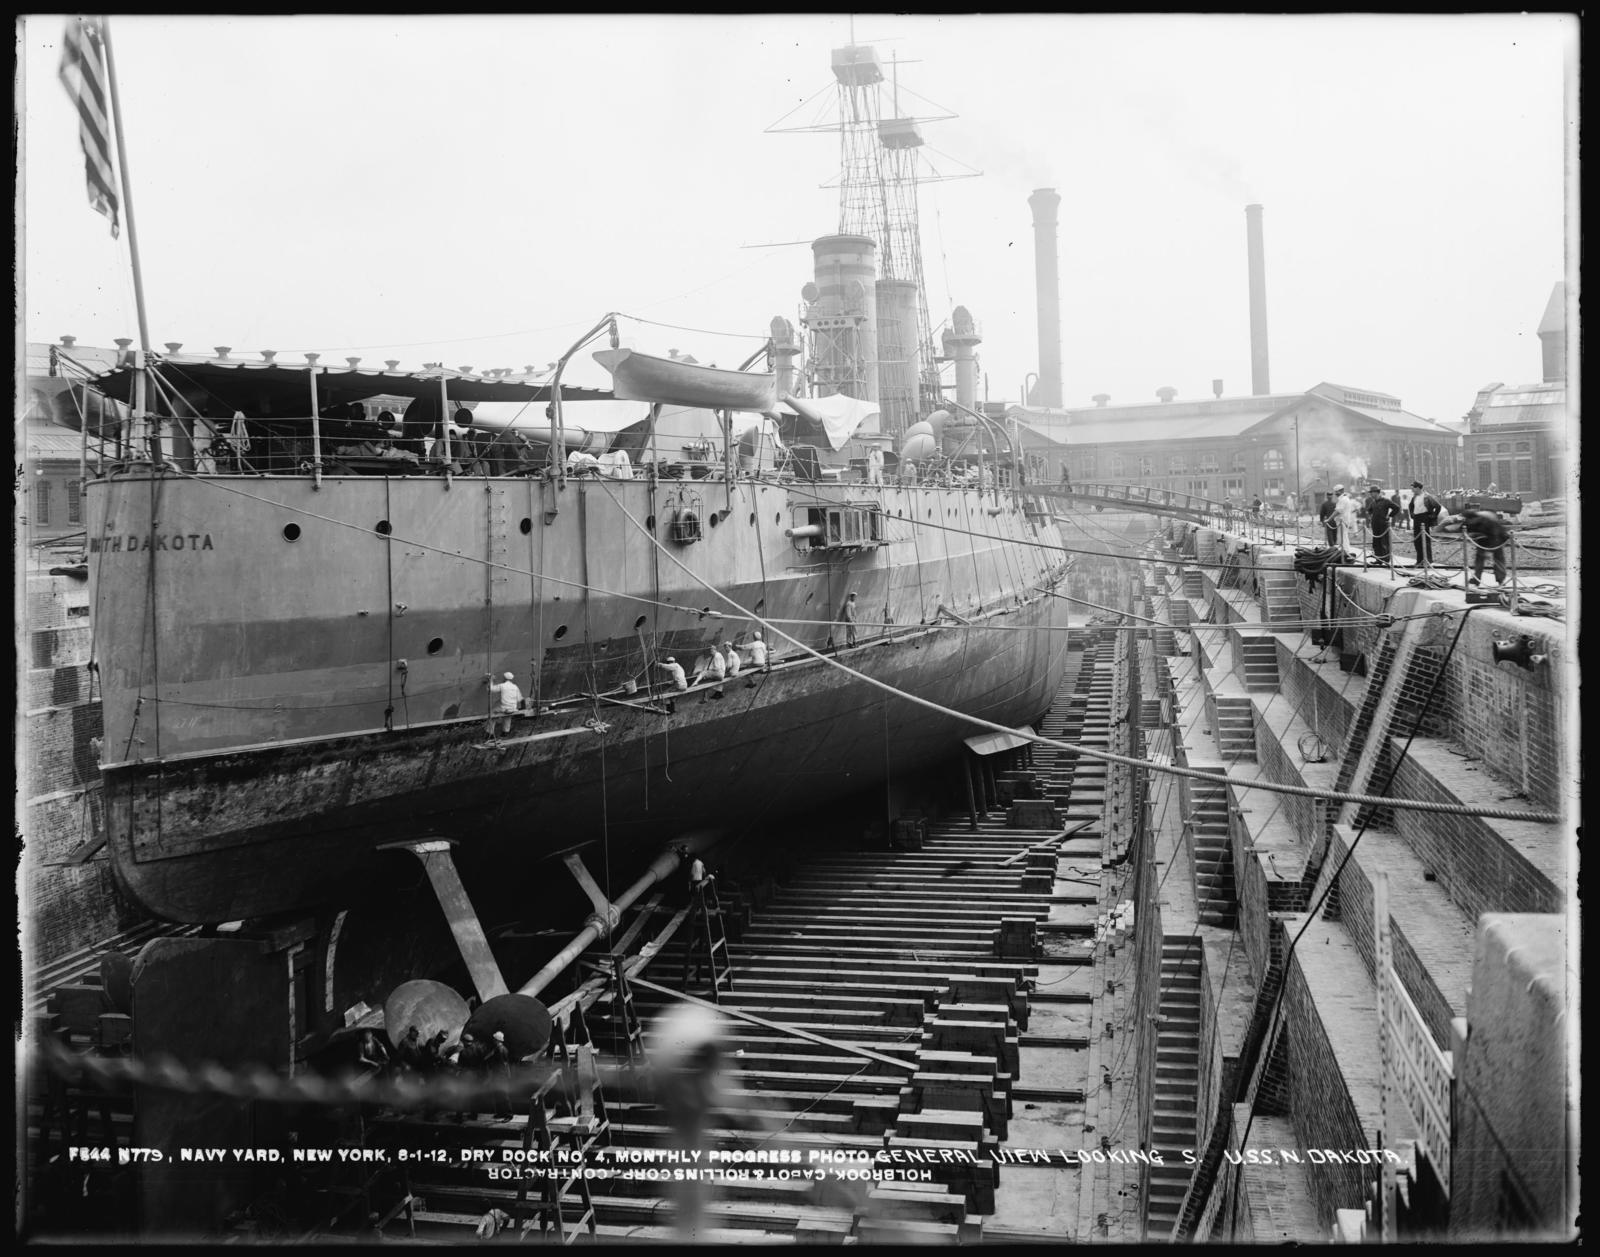 Dry Dock Number 4, Monthly Progress Photo, General View Looking South, USS North Dakota, Holbrook, Cabot and Rollins Corporation, Contractor